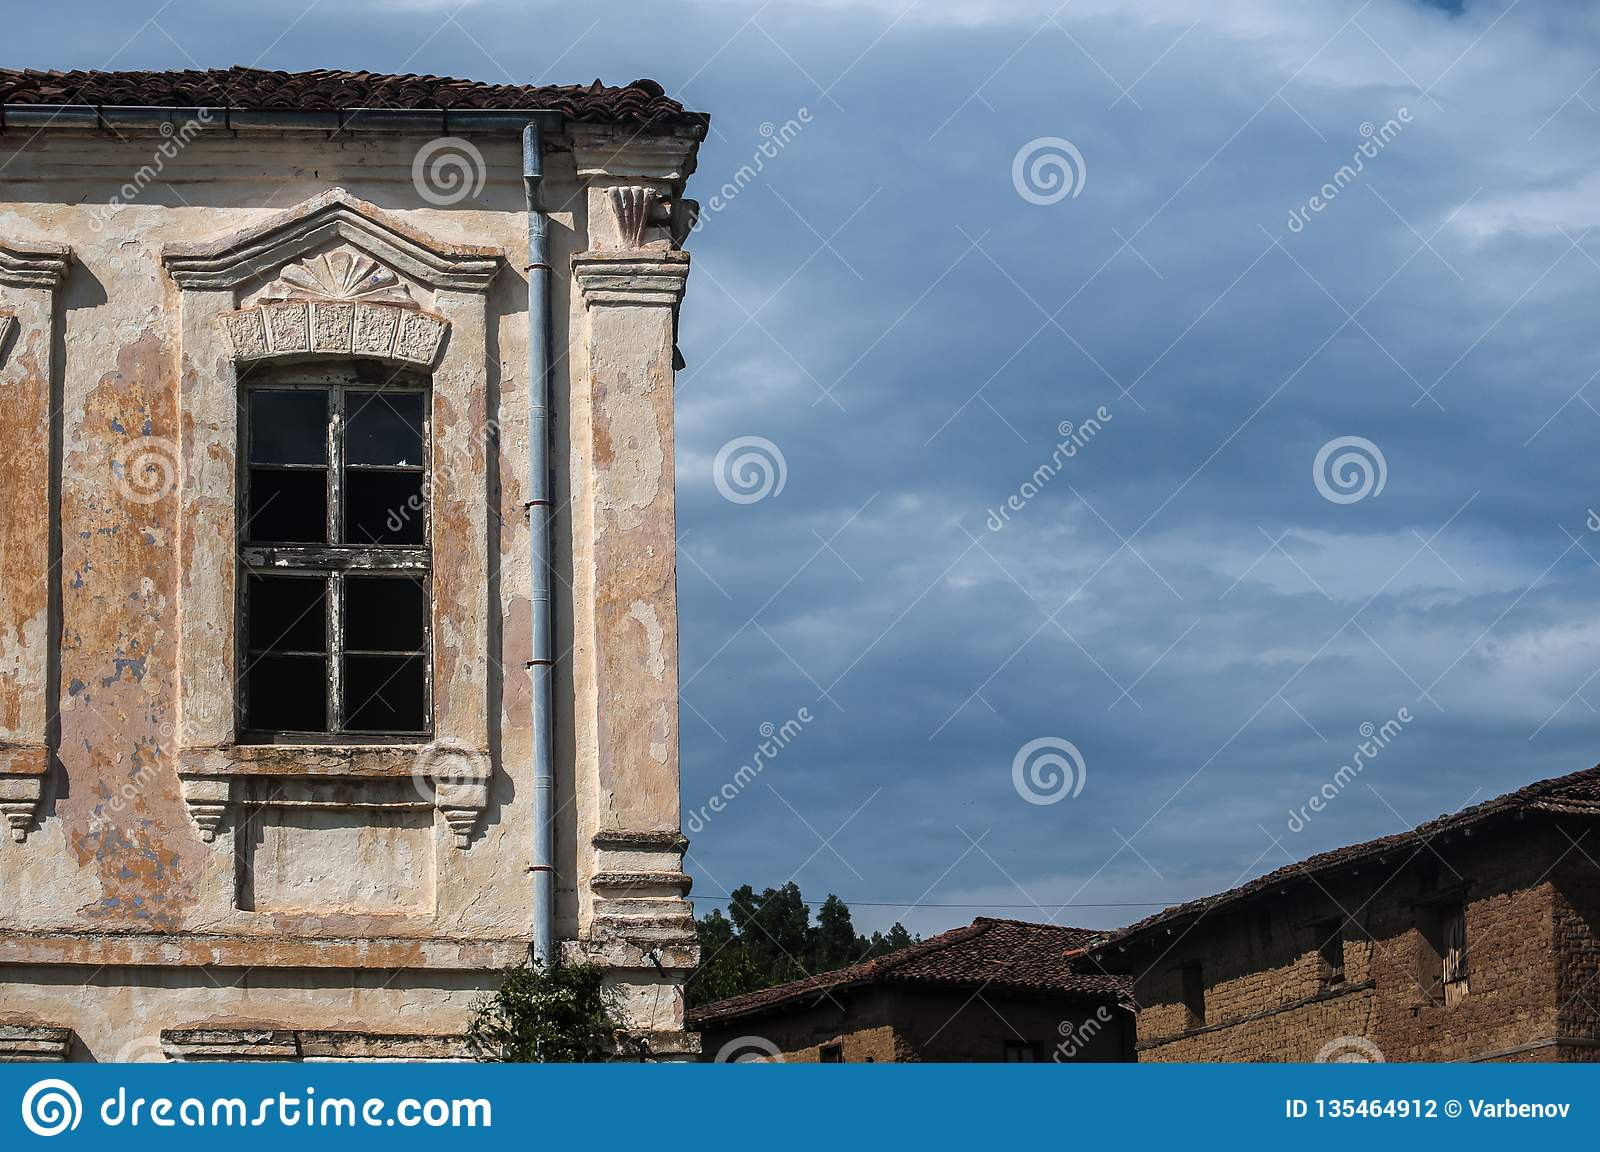 Old abandoned weathered house facade